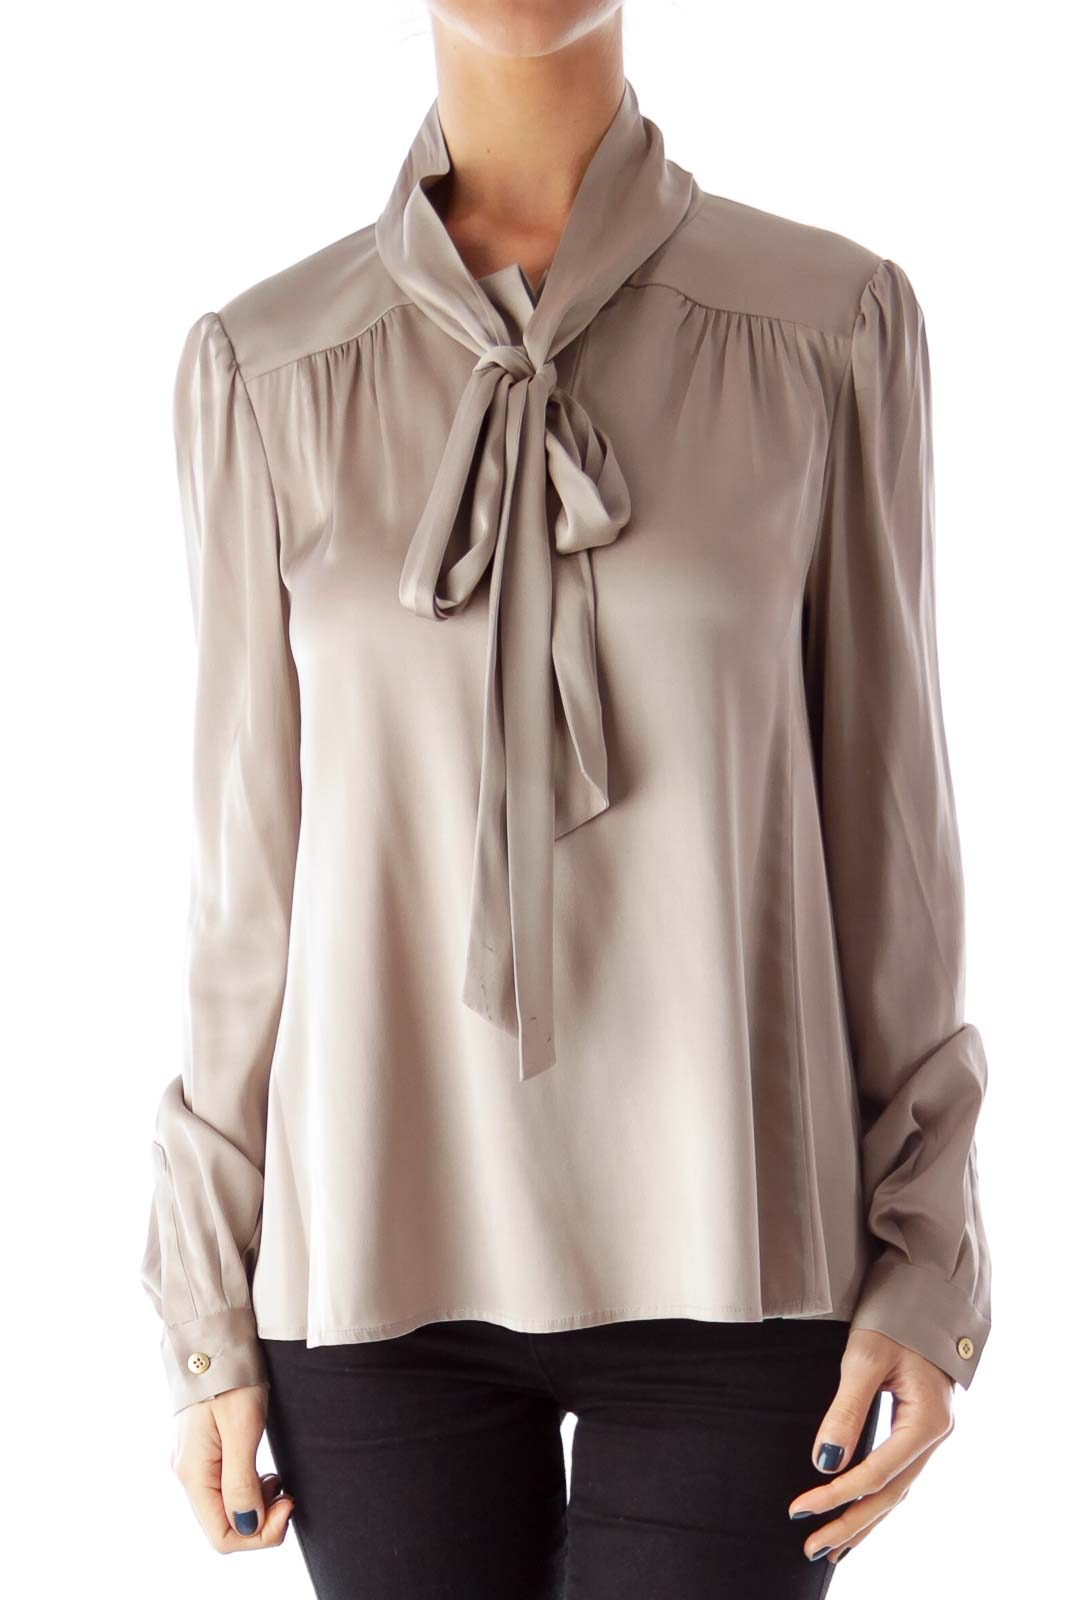 046cd95ef2d24 Shop Taupe Bow Silk Blouse clothing and handbags at SilkRoll. Trade ...